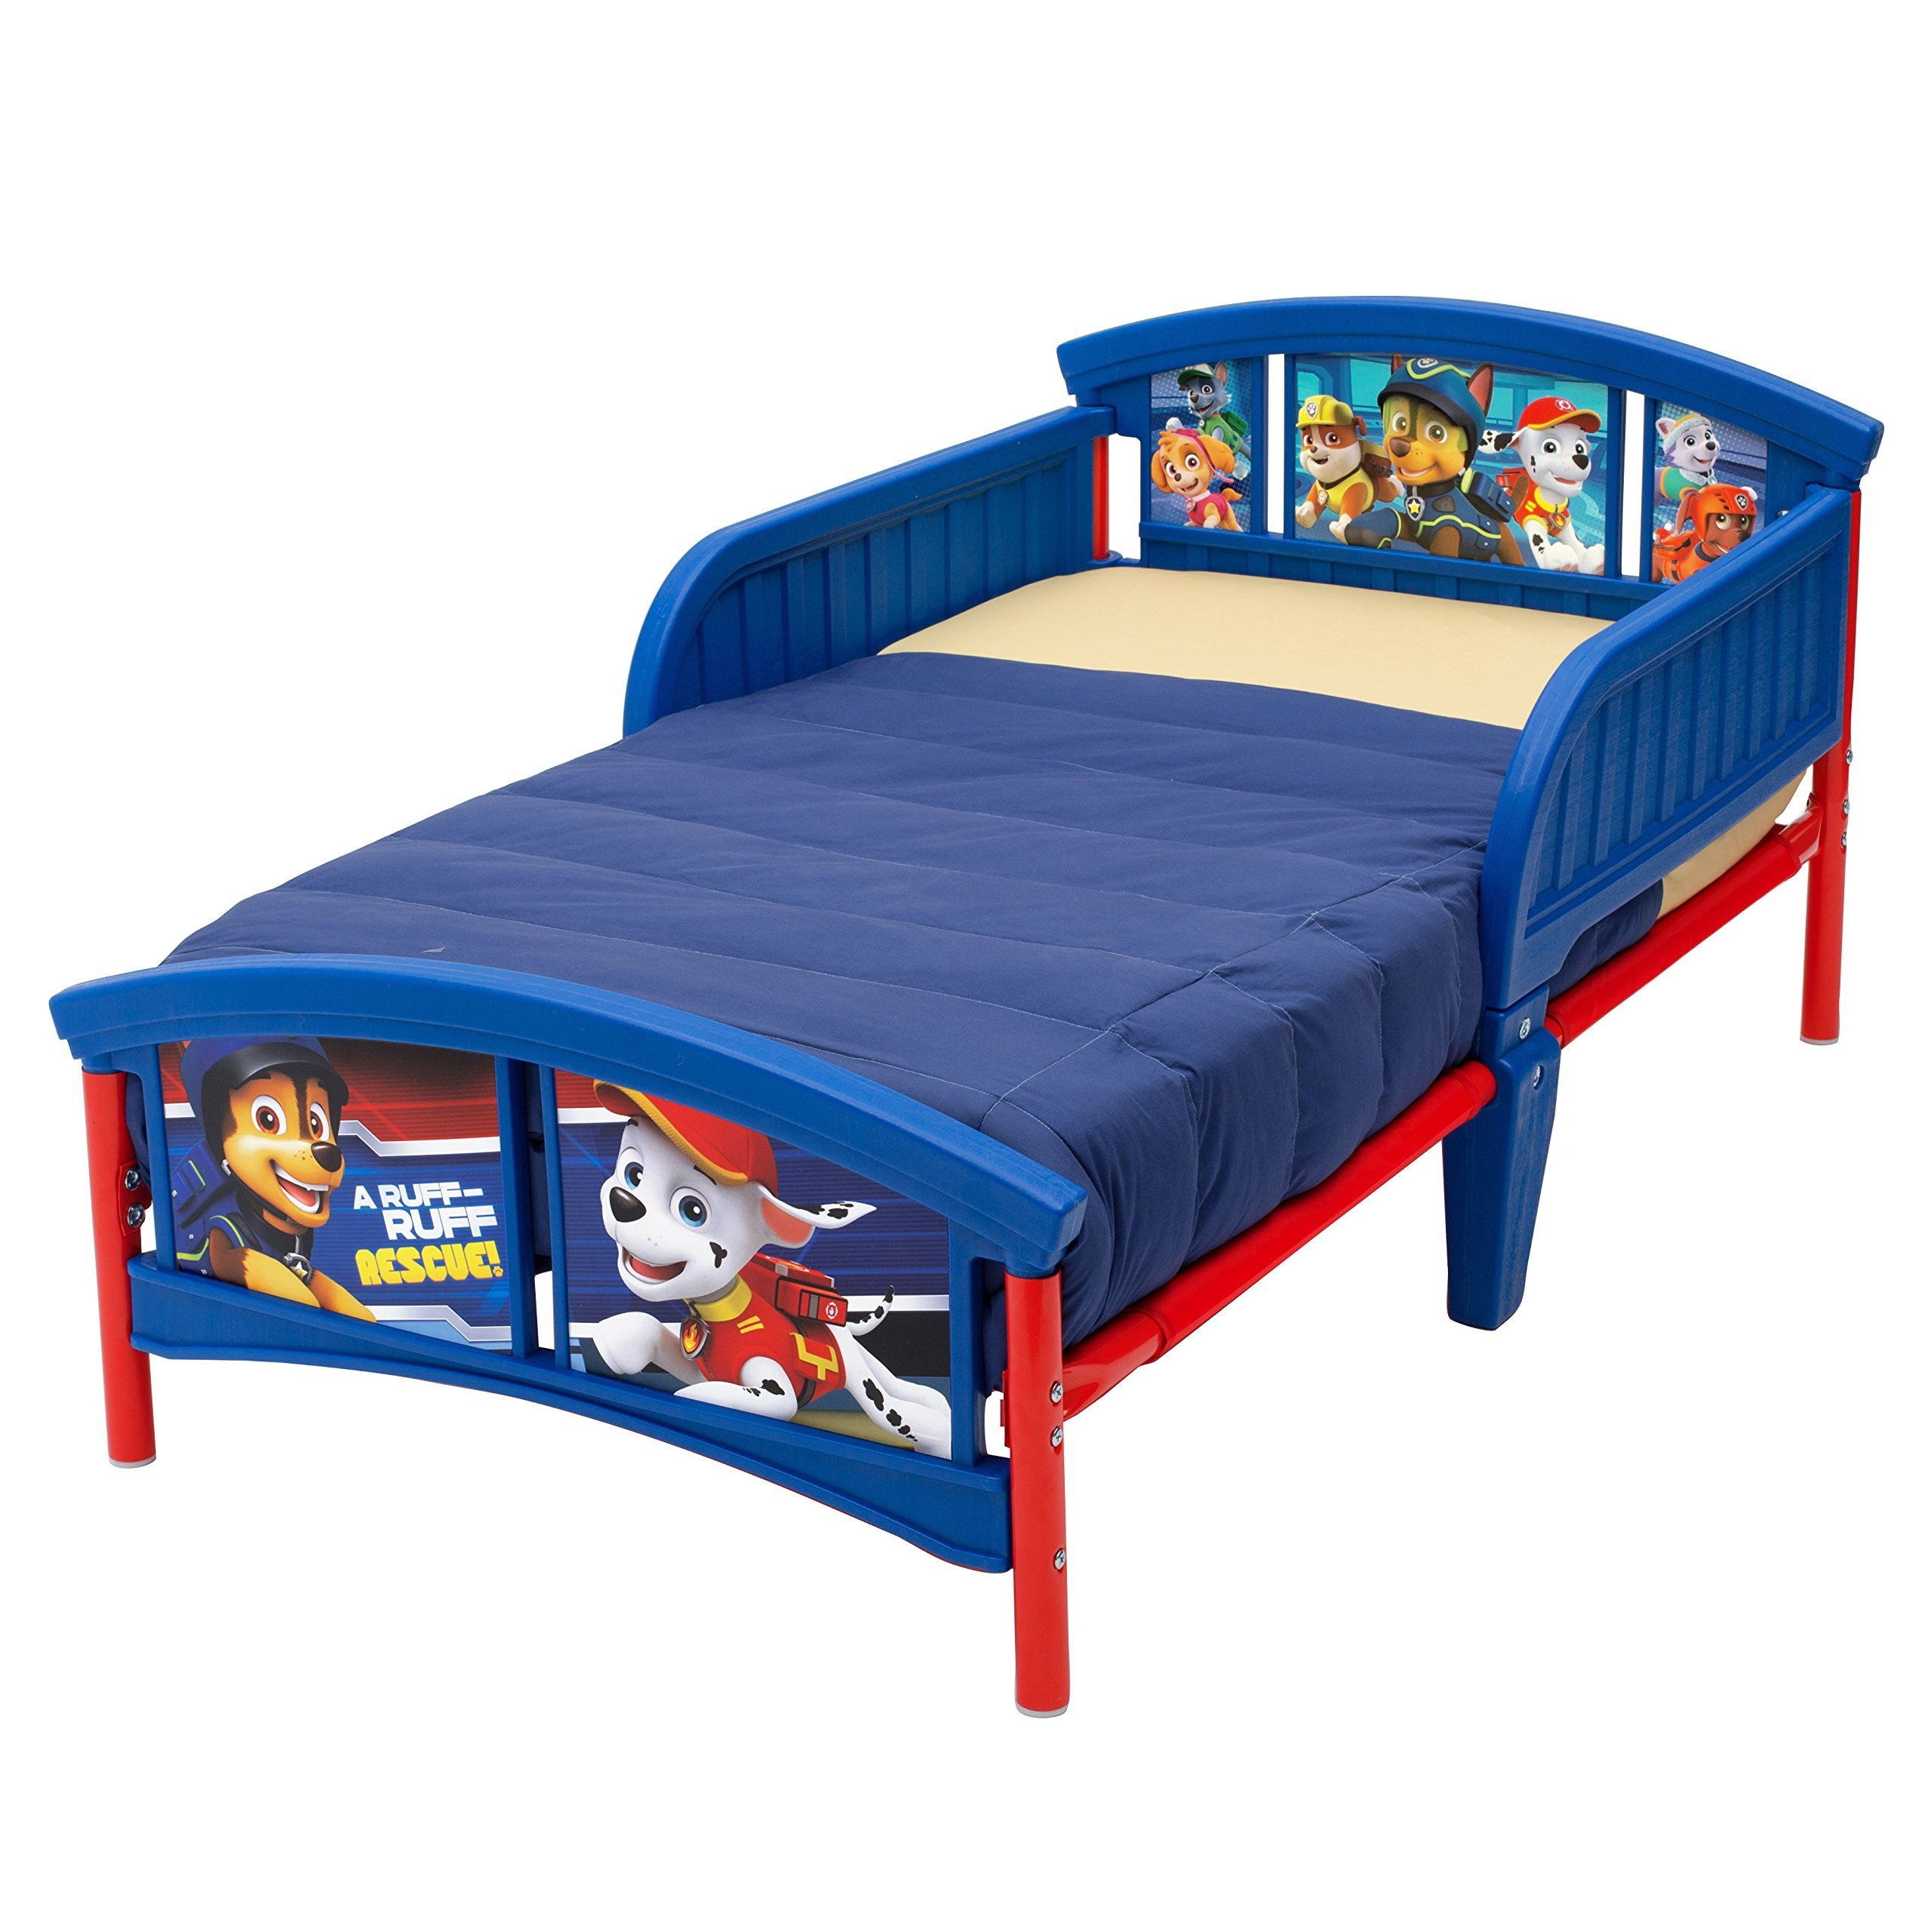 Paw Patrol Bedroom Furniture Unique Amazon Delta Children Paw Patrol